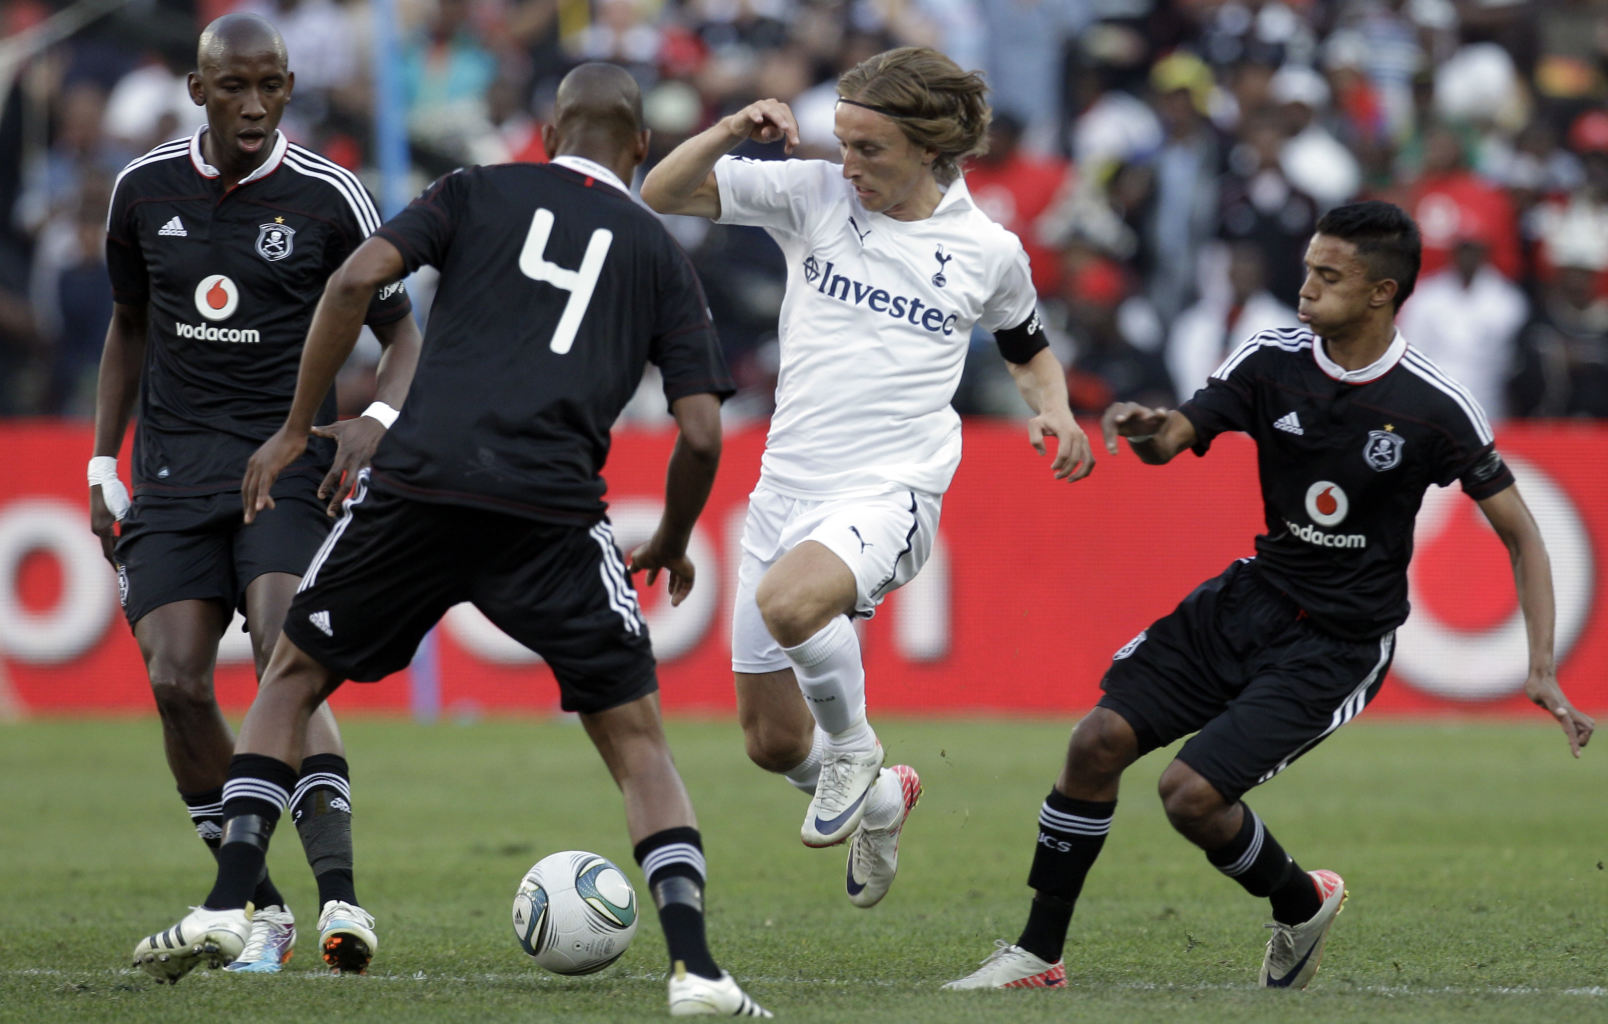 luka modric second from right attacks as orlando pirates players